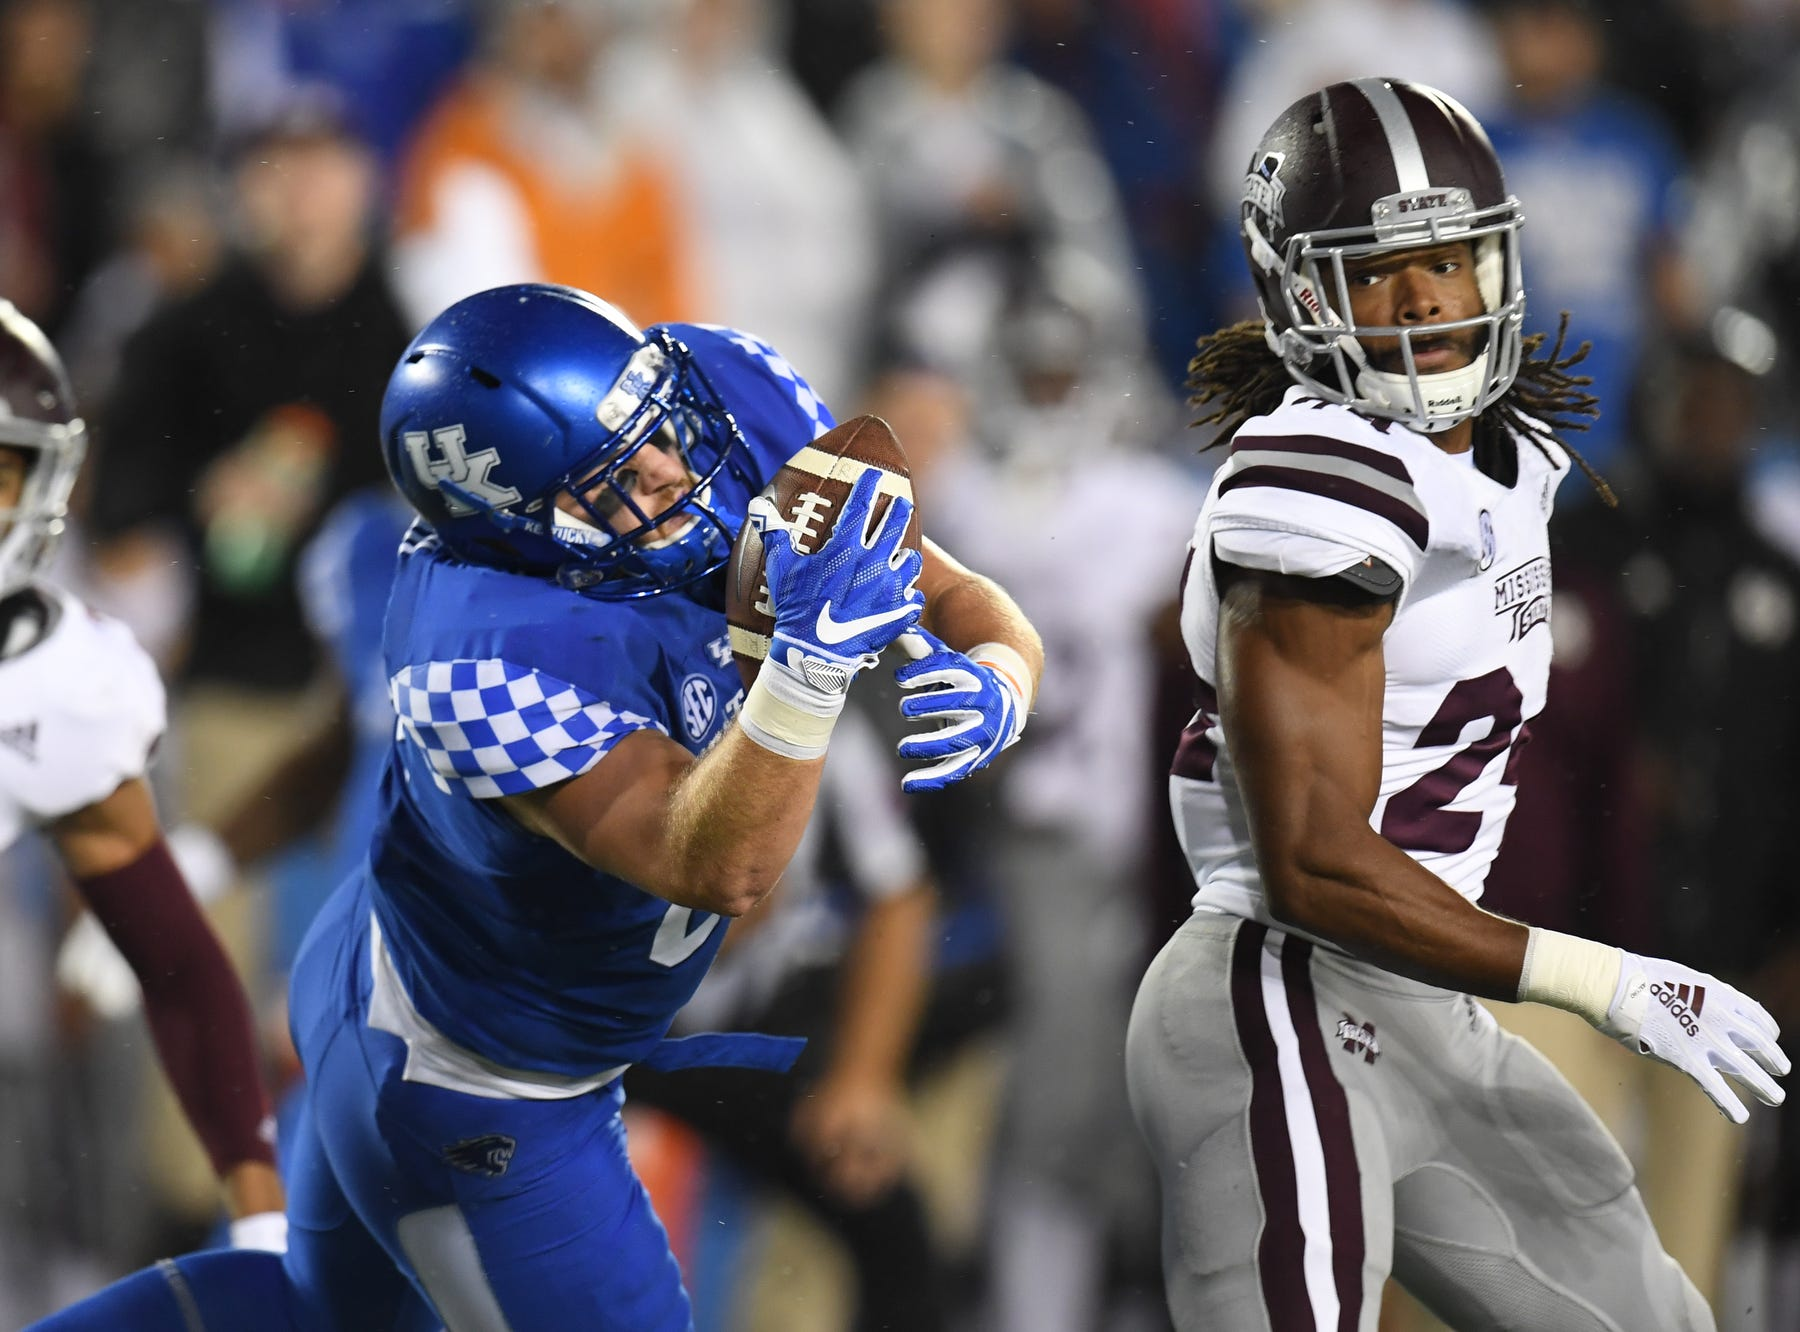 UK TE C.J. Conrad makes the catch during the University of Kentucky football game against Mississippi State at Kroger Field in Lexington, Kentucky on Saturday, September 22, 2018.